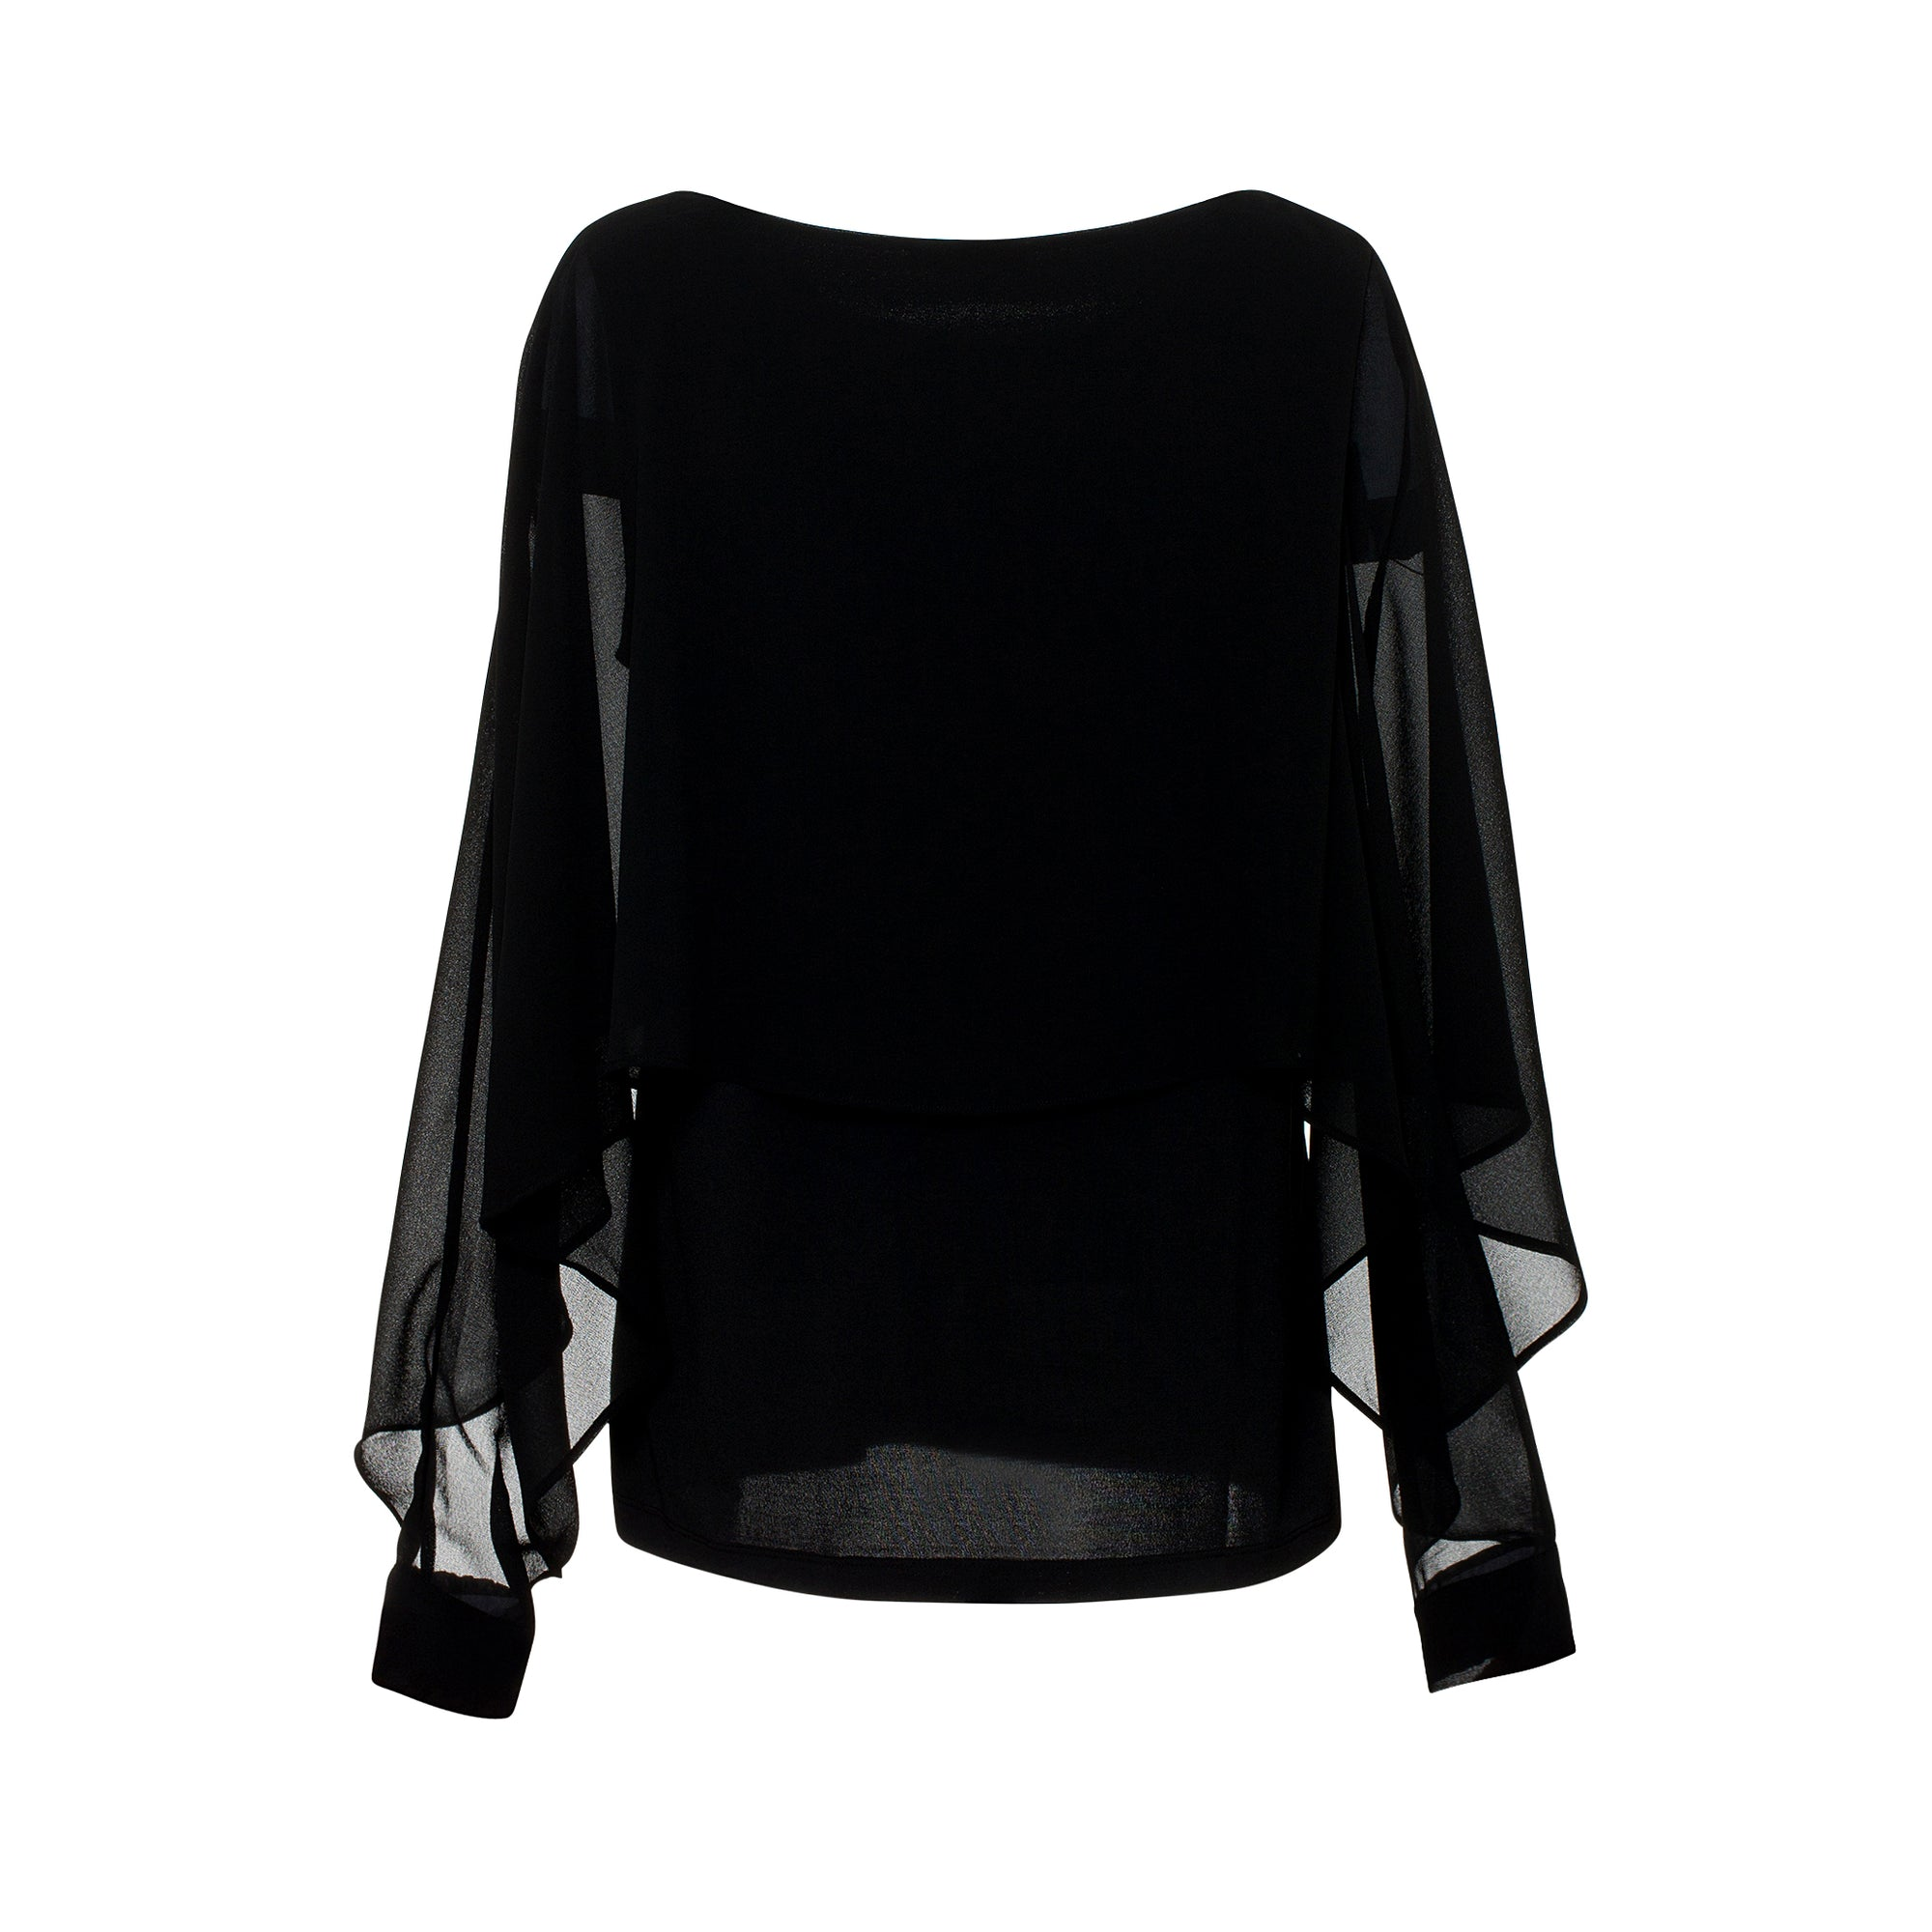 Blouse with top - guimanos-store